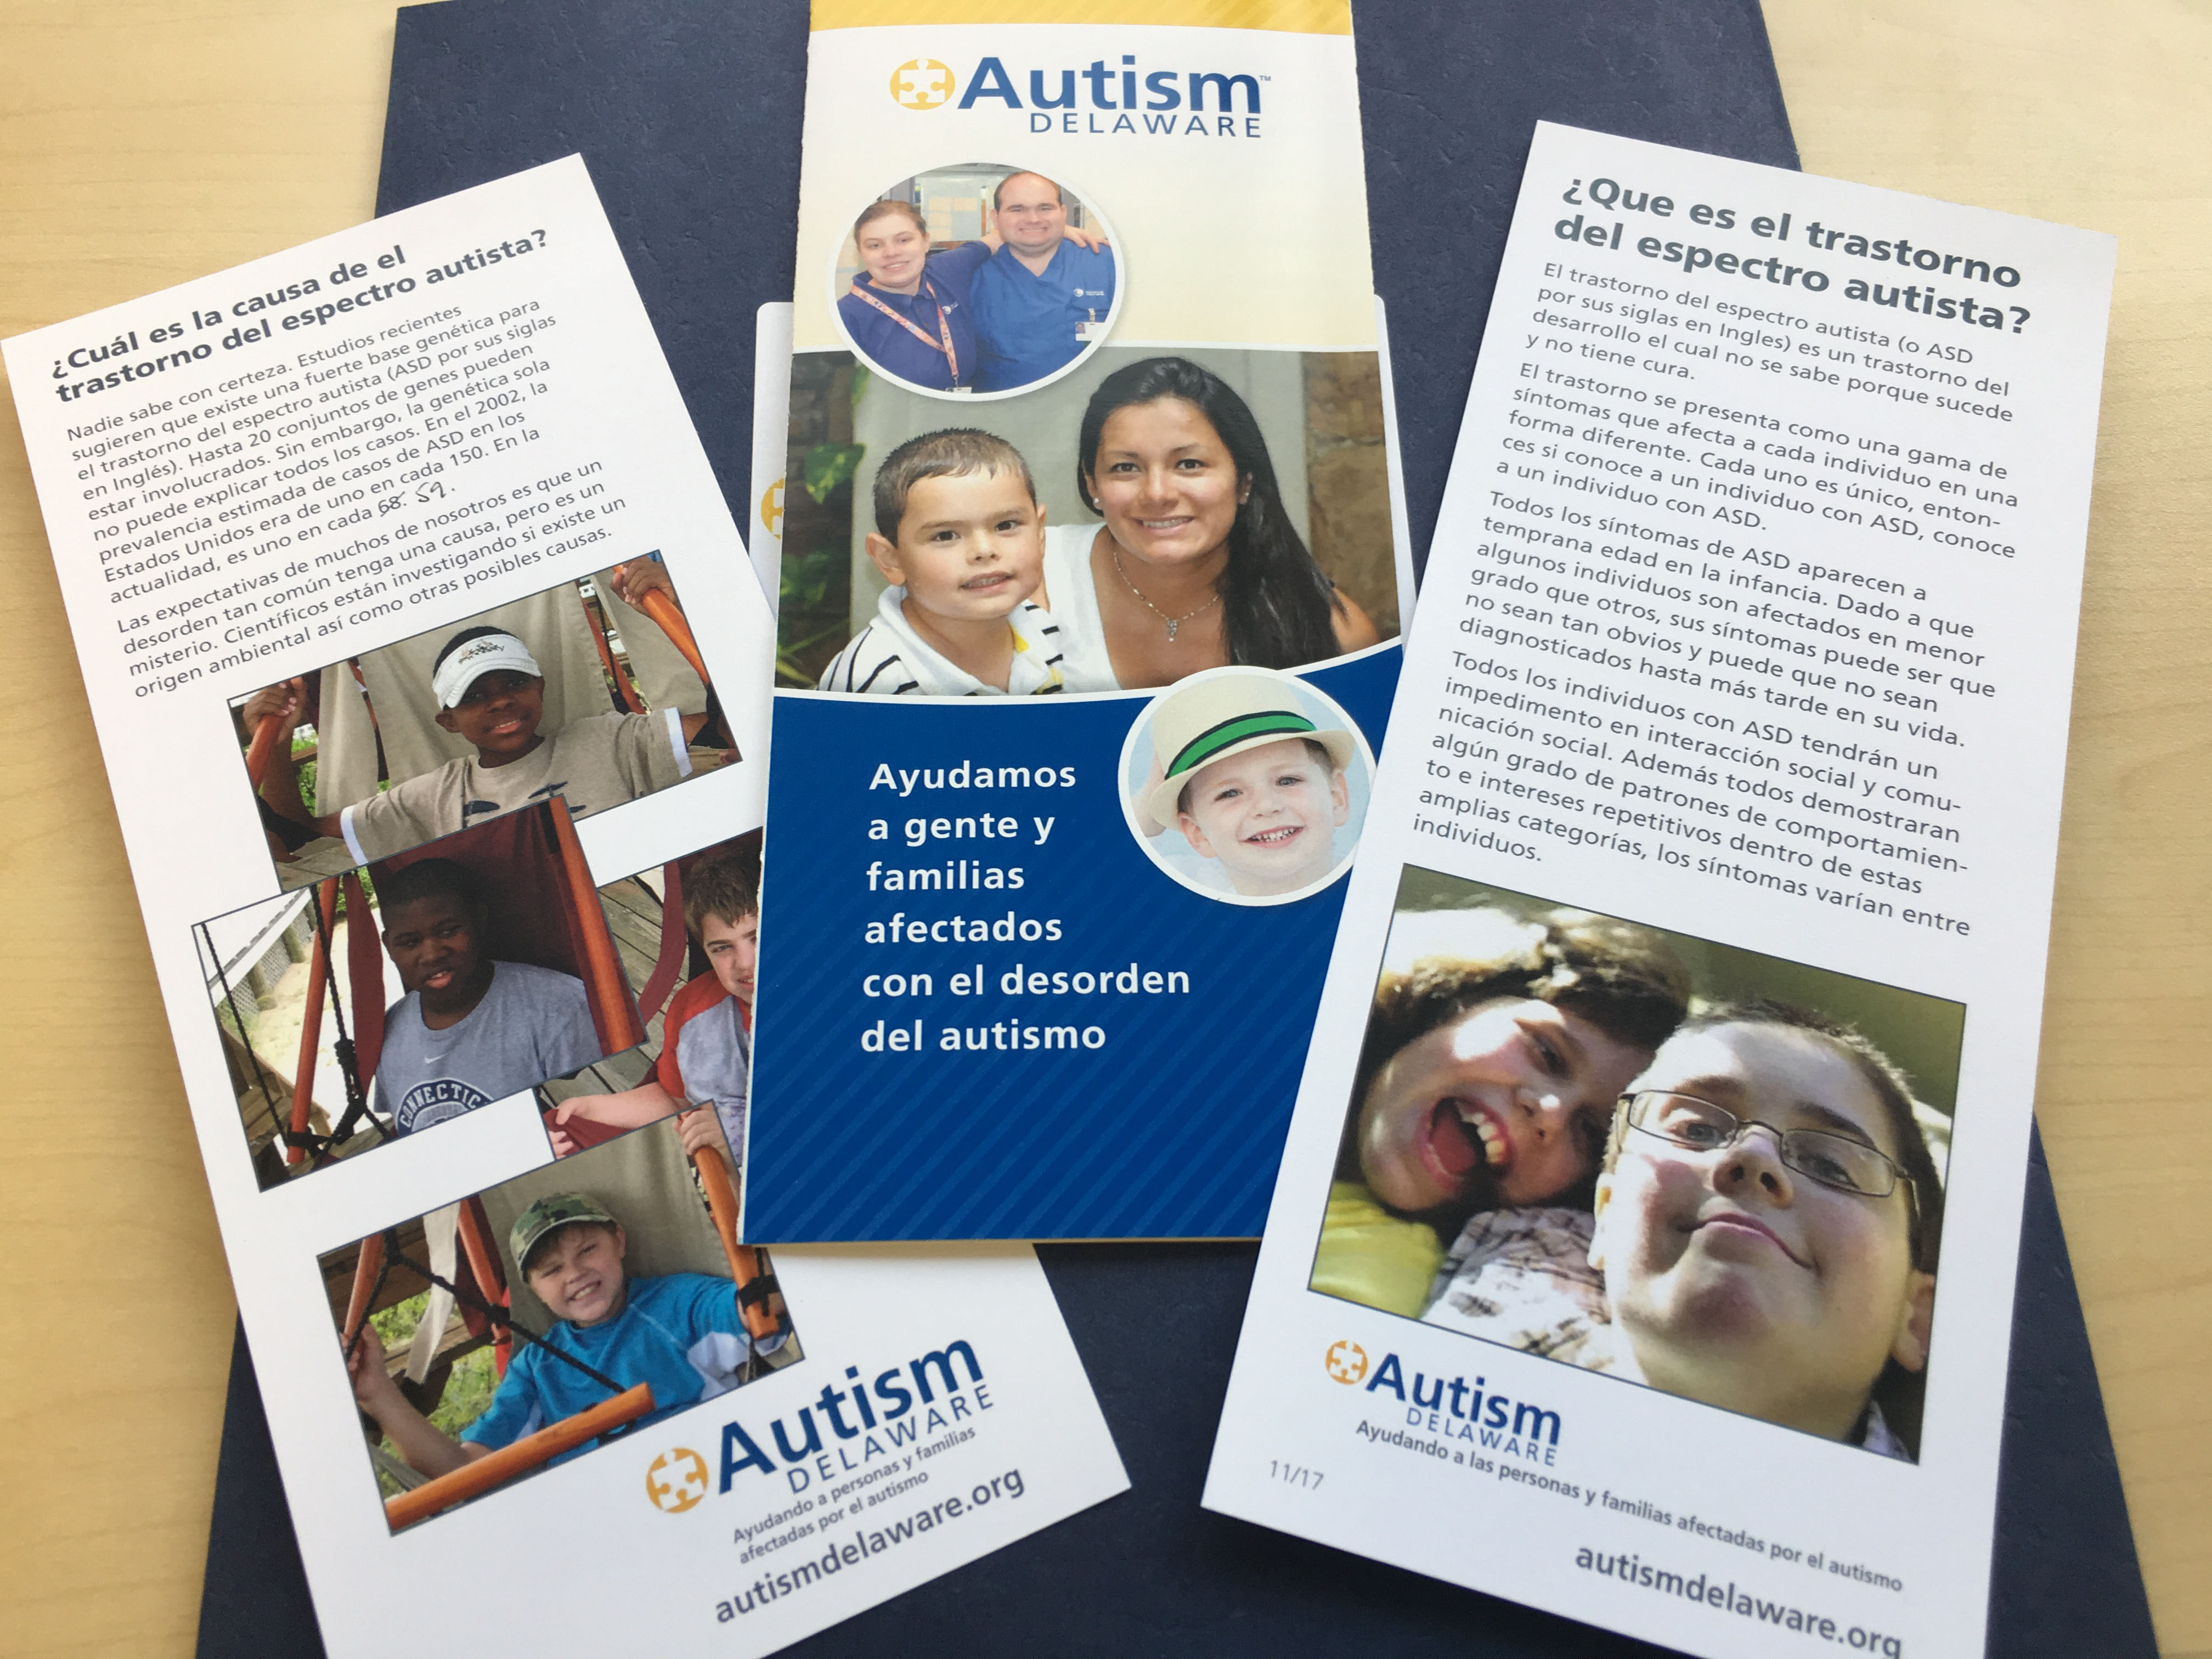 Spanish language pamphlets produced by Autism Delaware are part of the group's effort to better connect Latino families to services they need. (Mark Eichmann/WHYY)